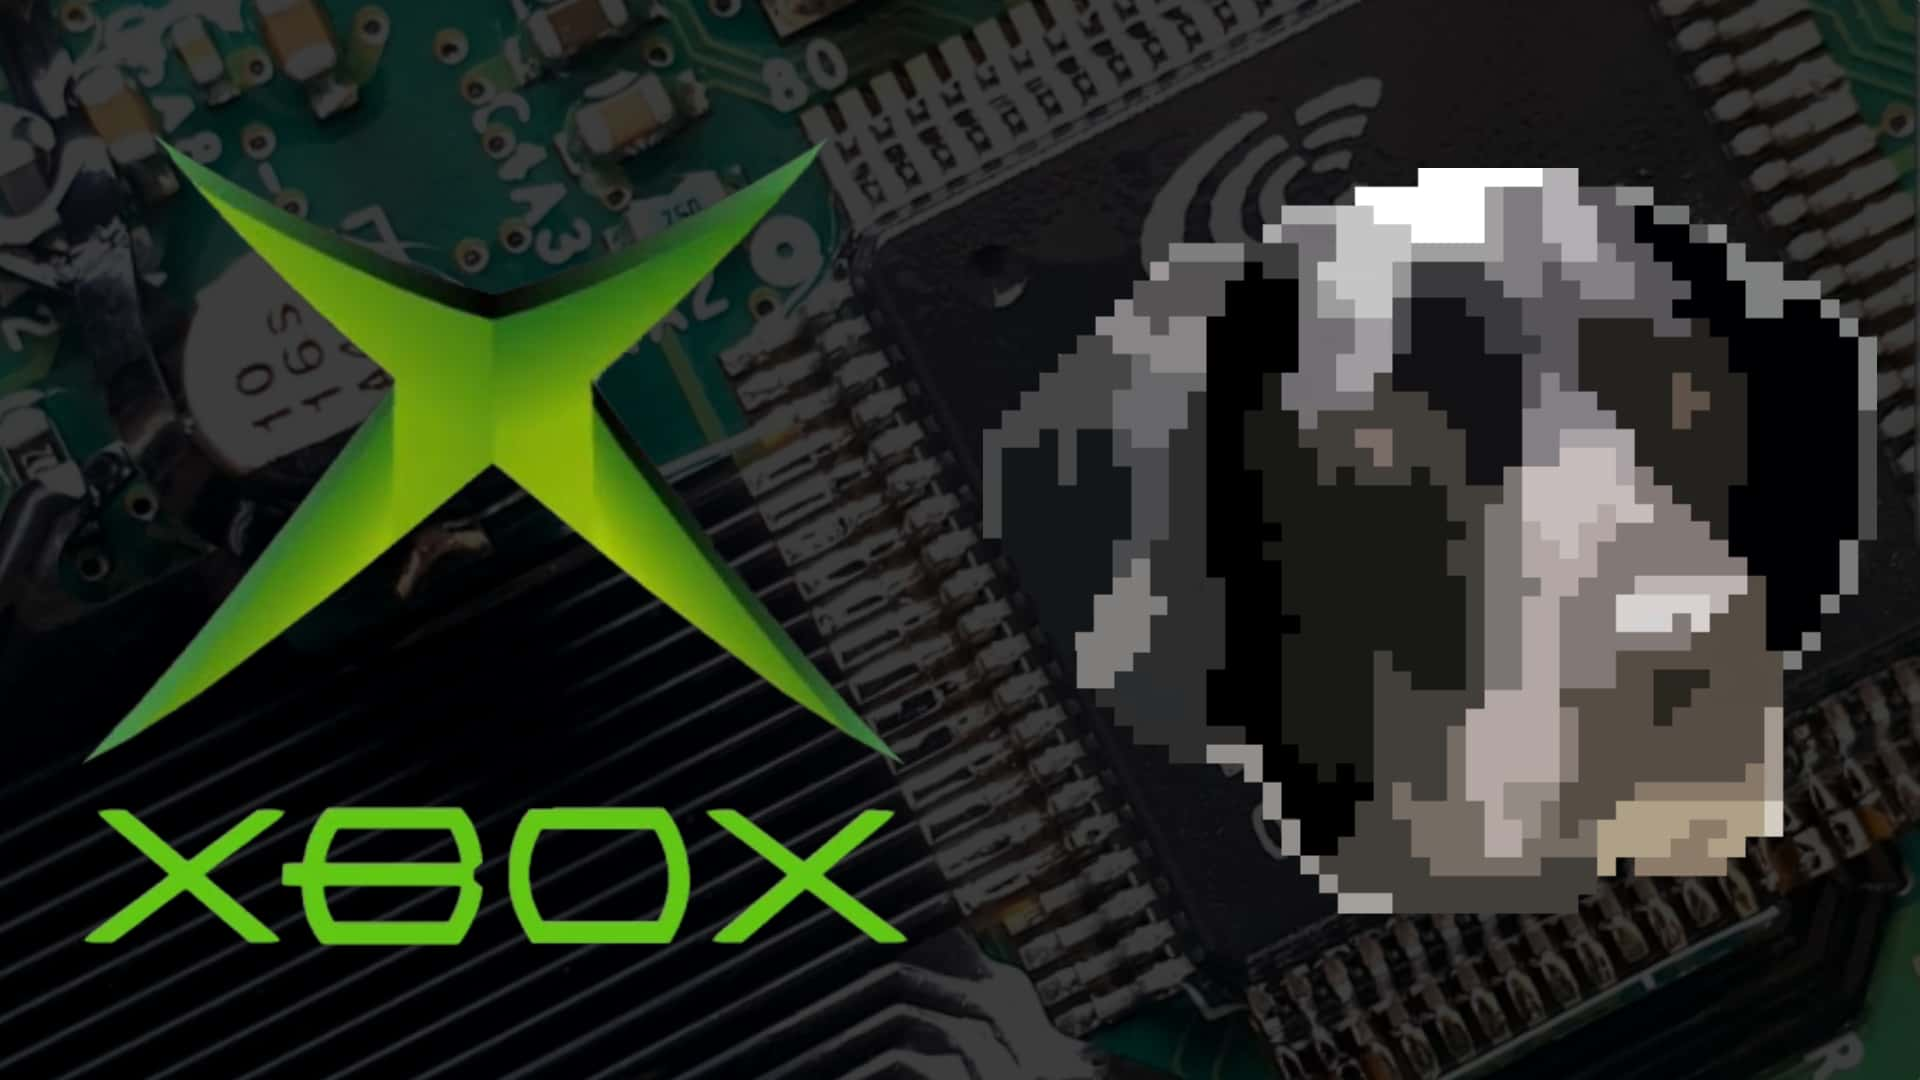 Citrus3000psi Teases Mod for Original Xbox [Updated]